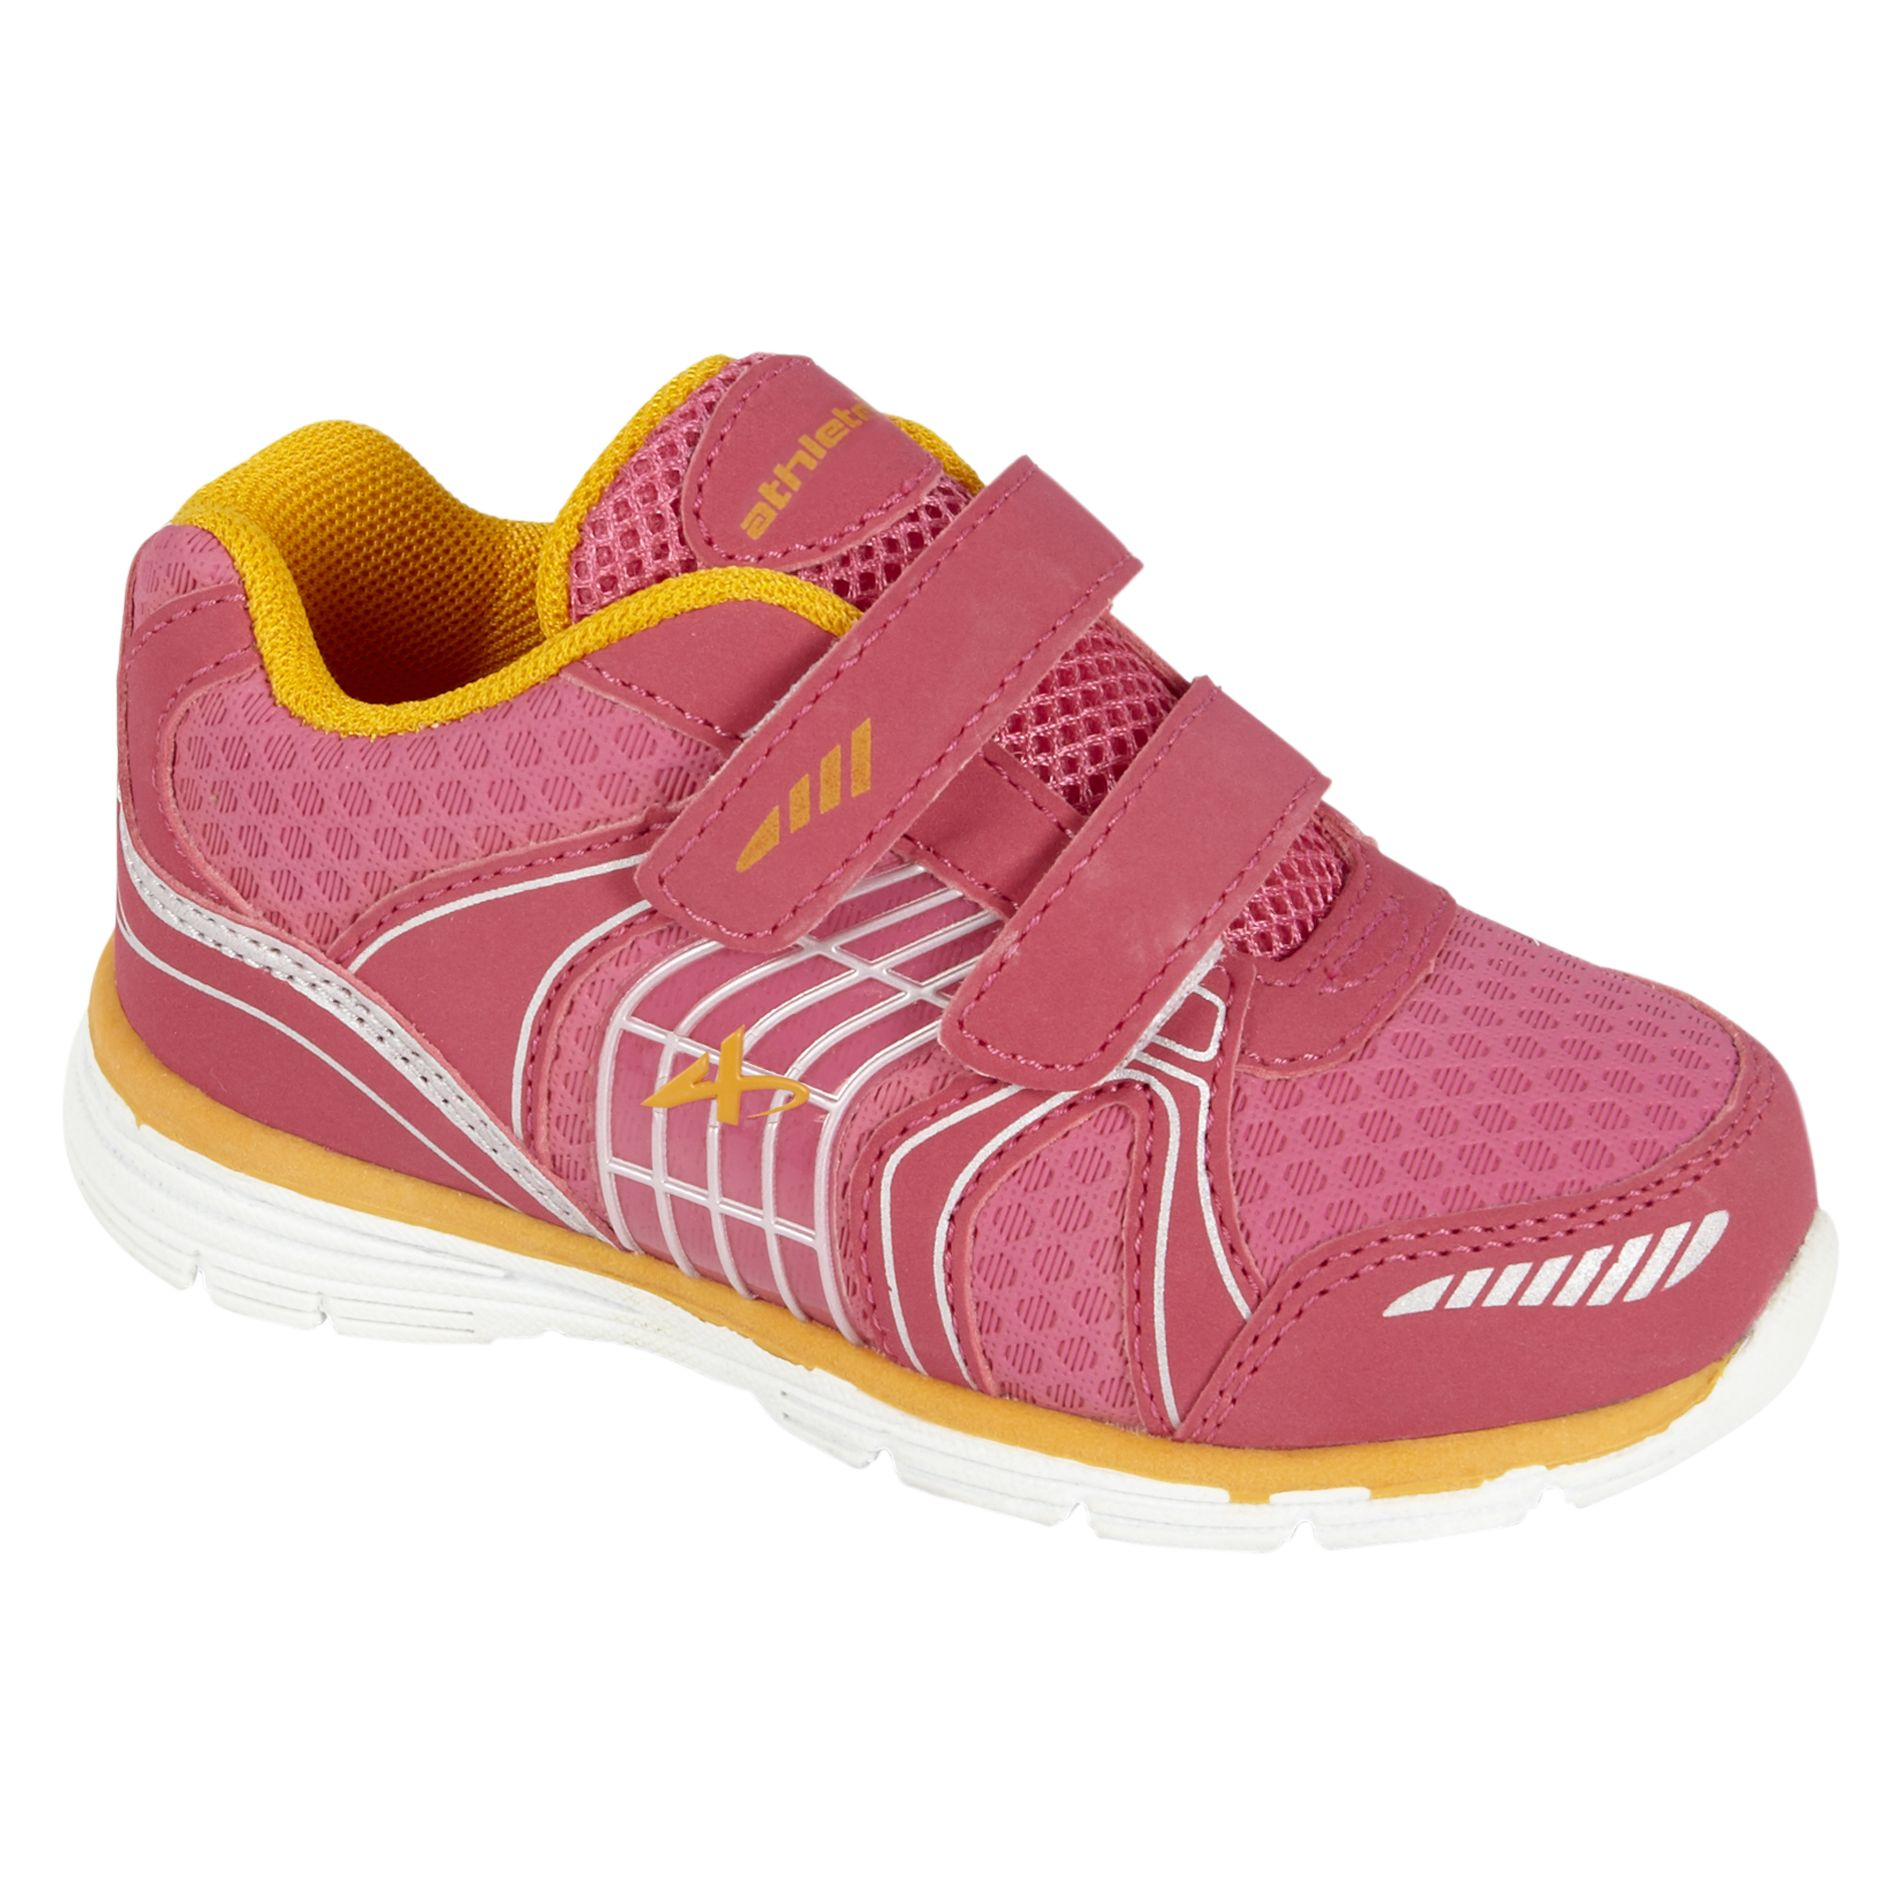 Athletech  Toddler Girl's Sneaker